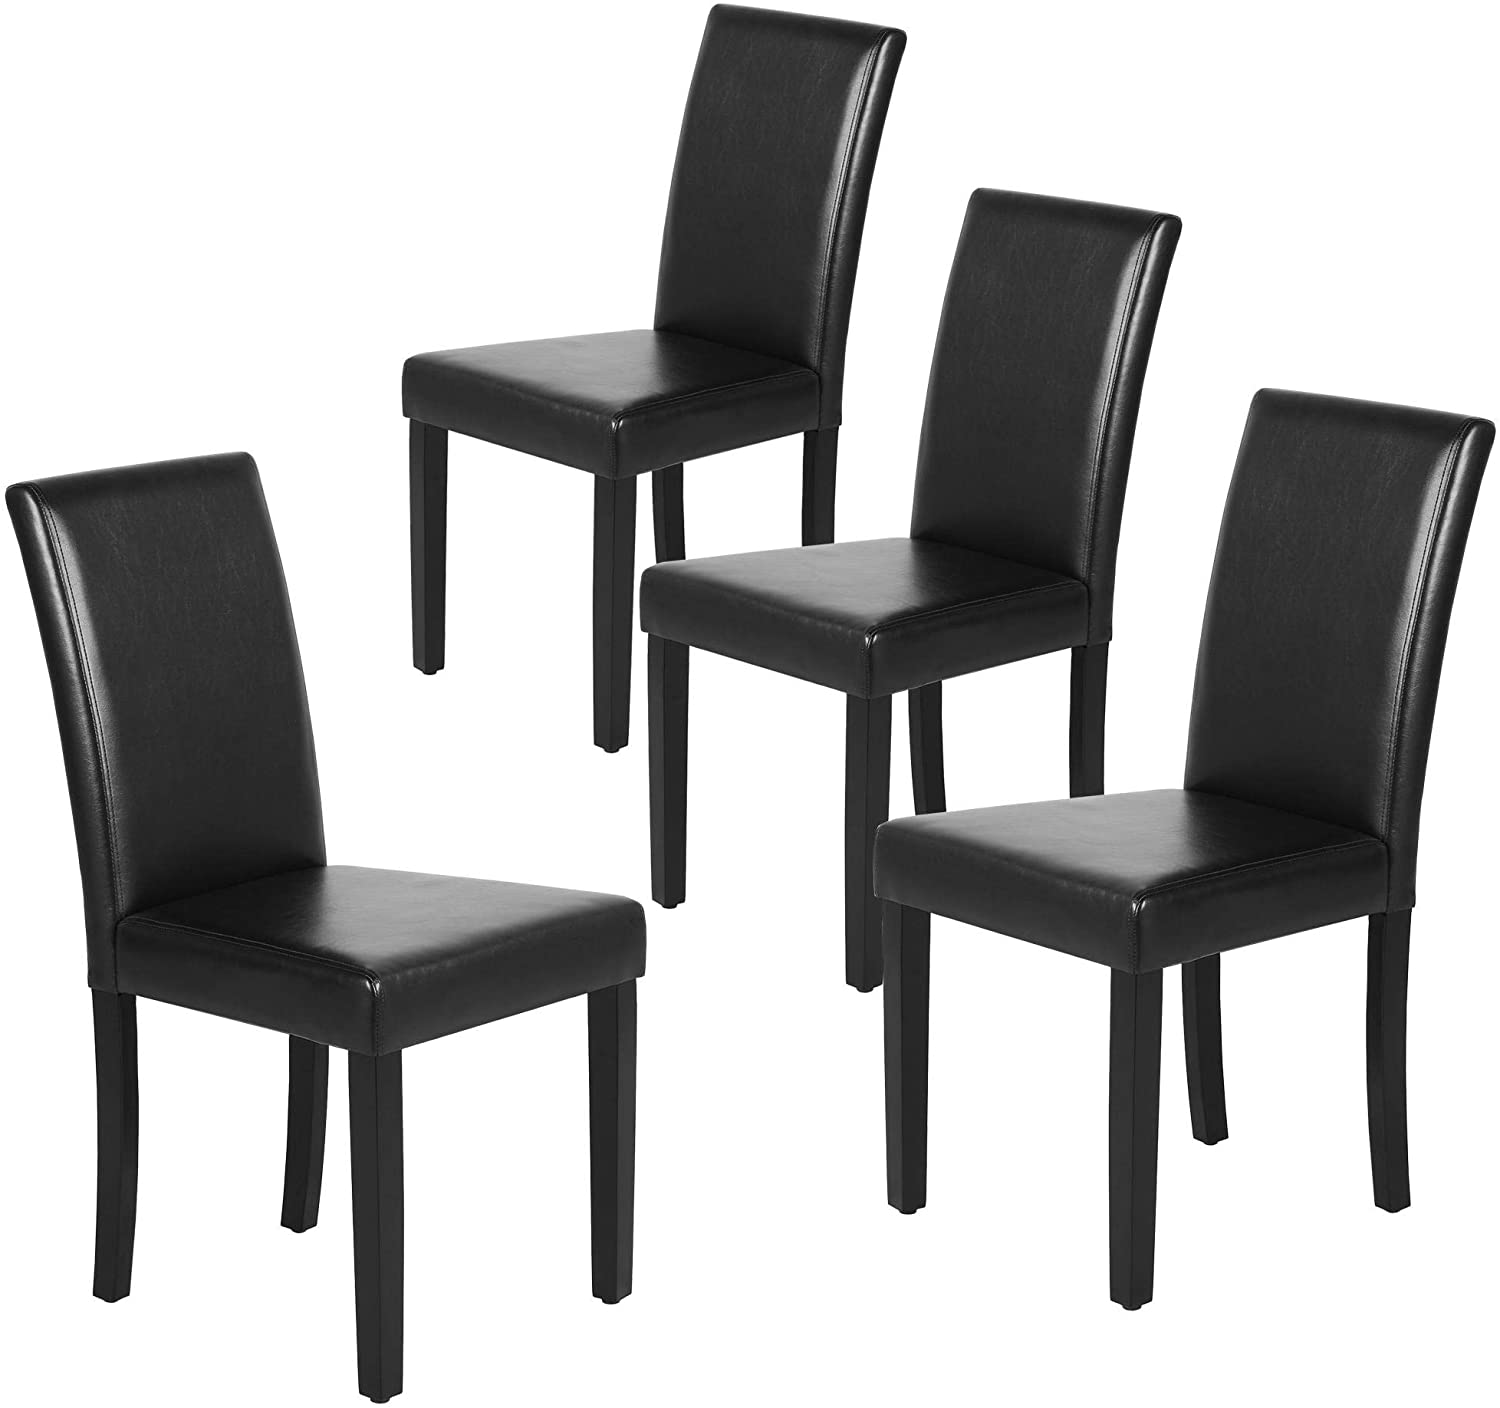 Best Dining Chair for Back Pain: Yaheetech Dining Chair.